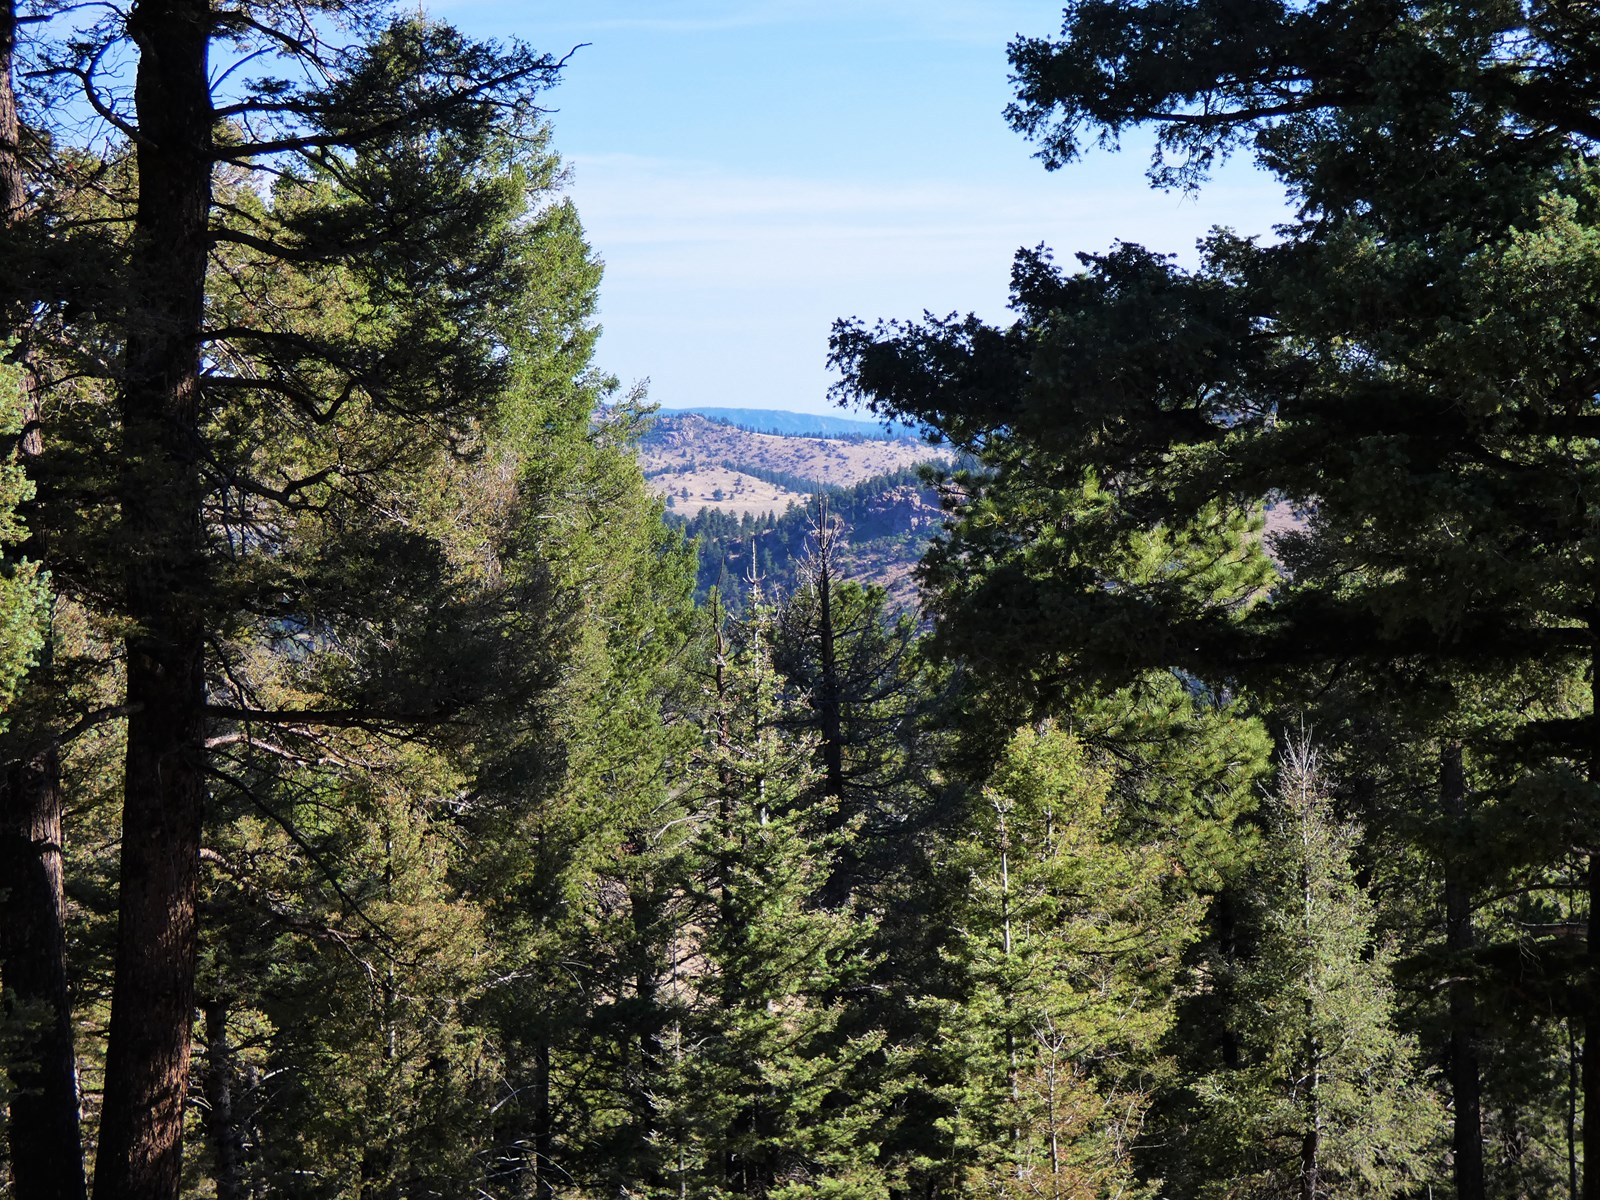 View Through the Pines